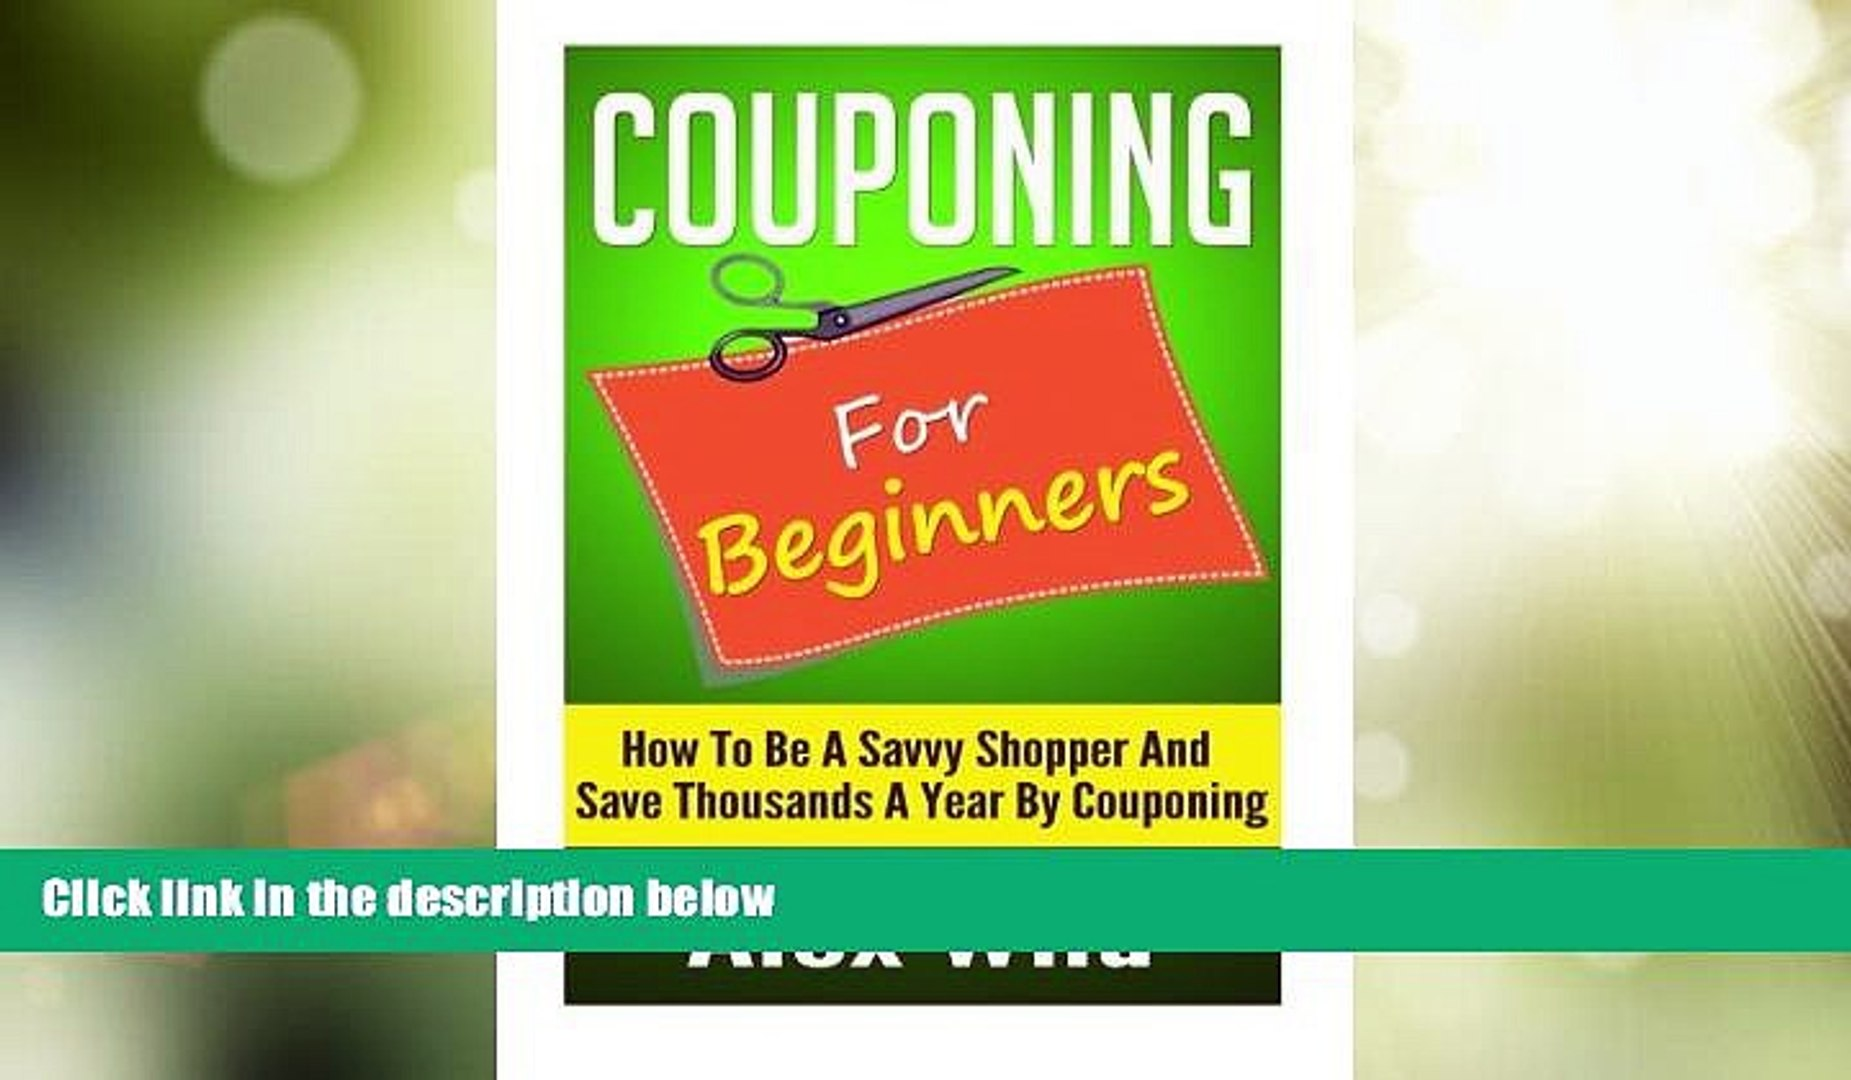 Big Deals  Couponing For Beginners: How To Be A Savvy Shopper And Save Thousands A Year By